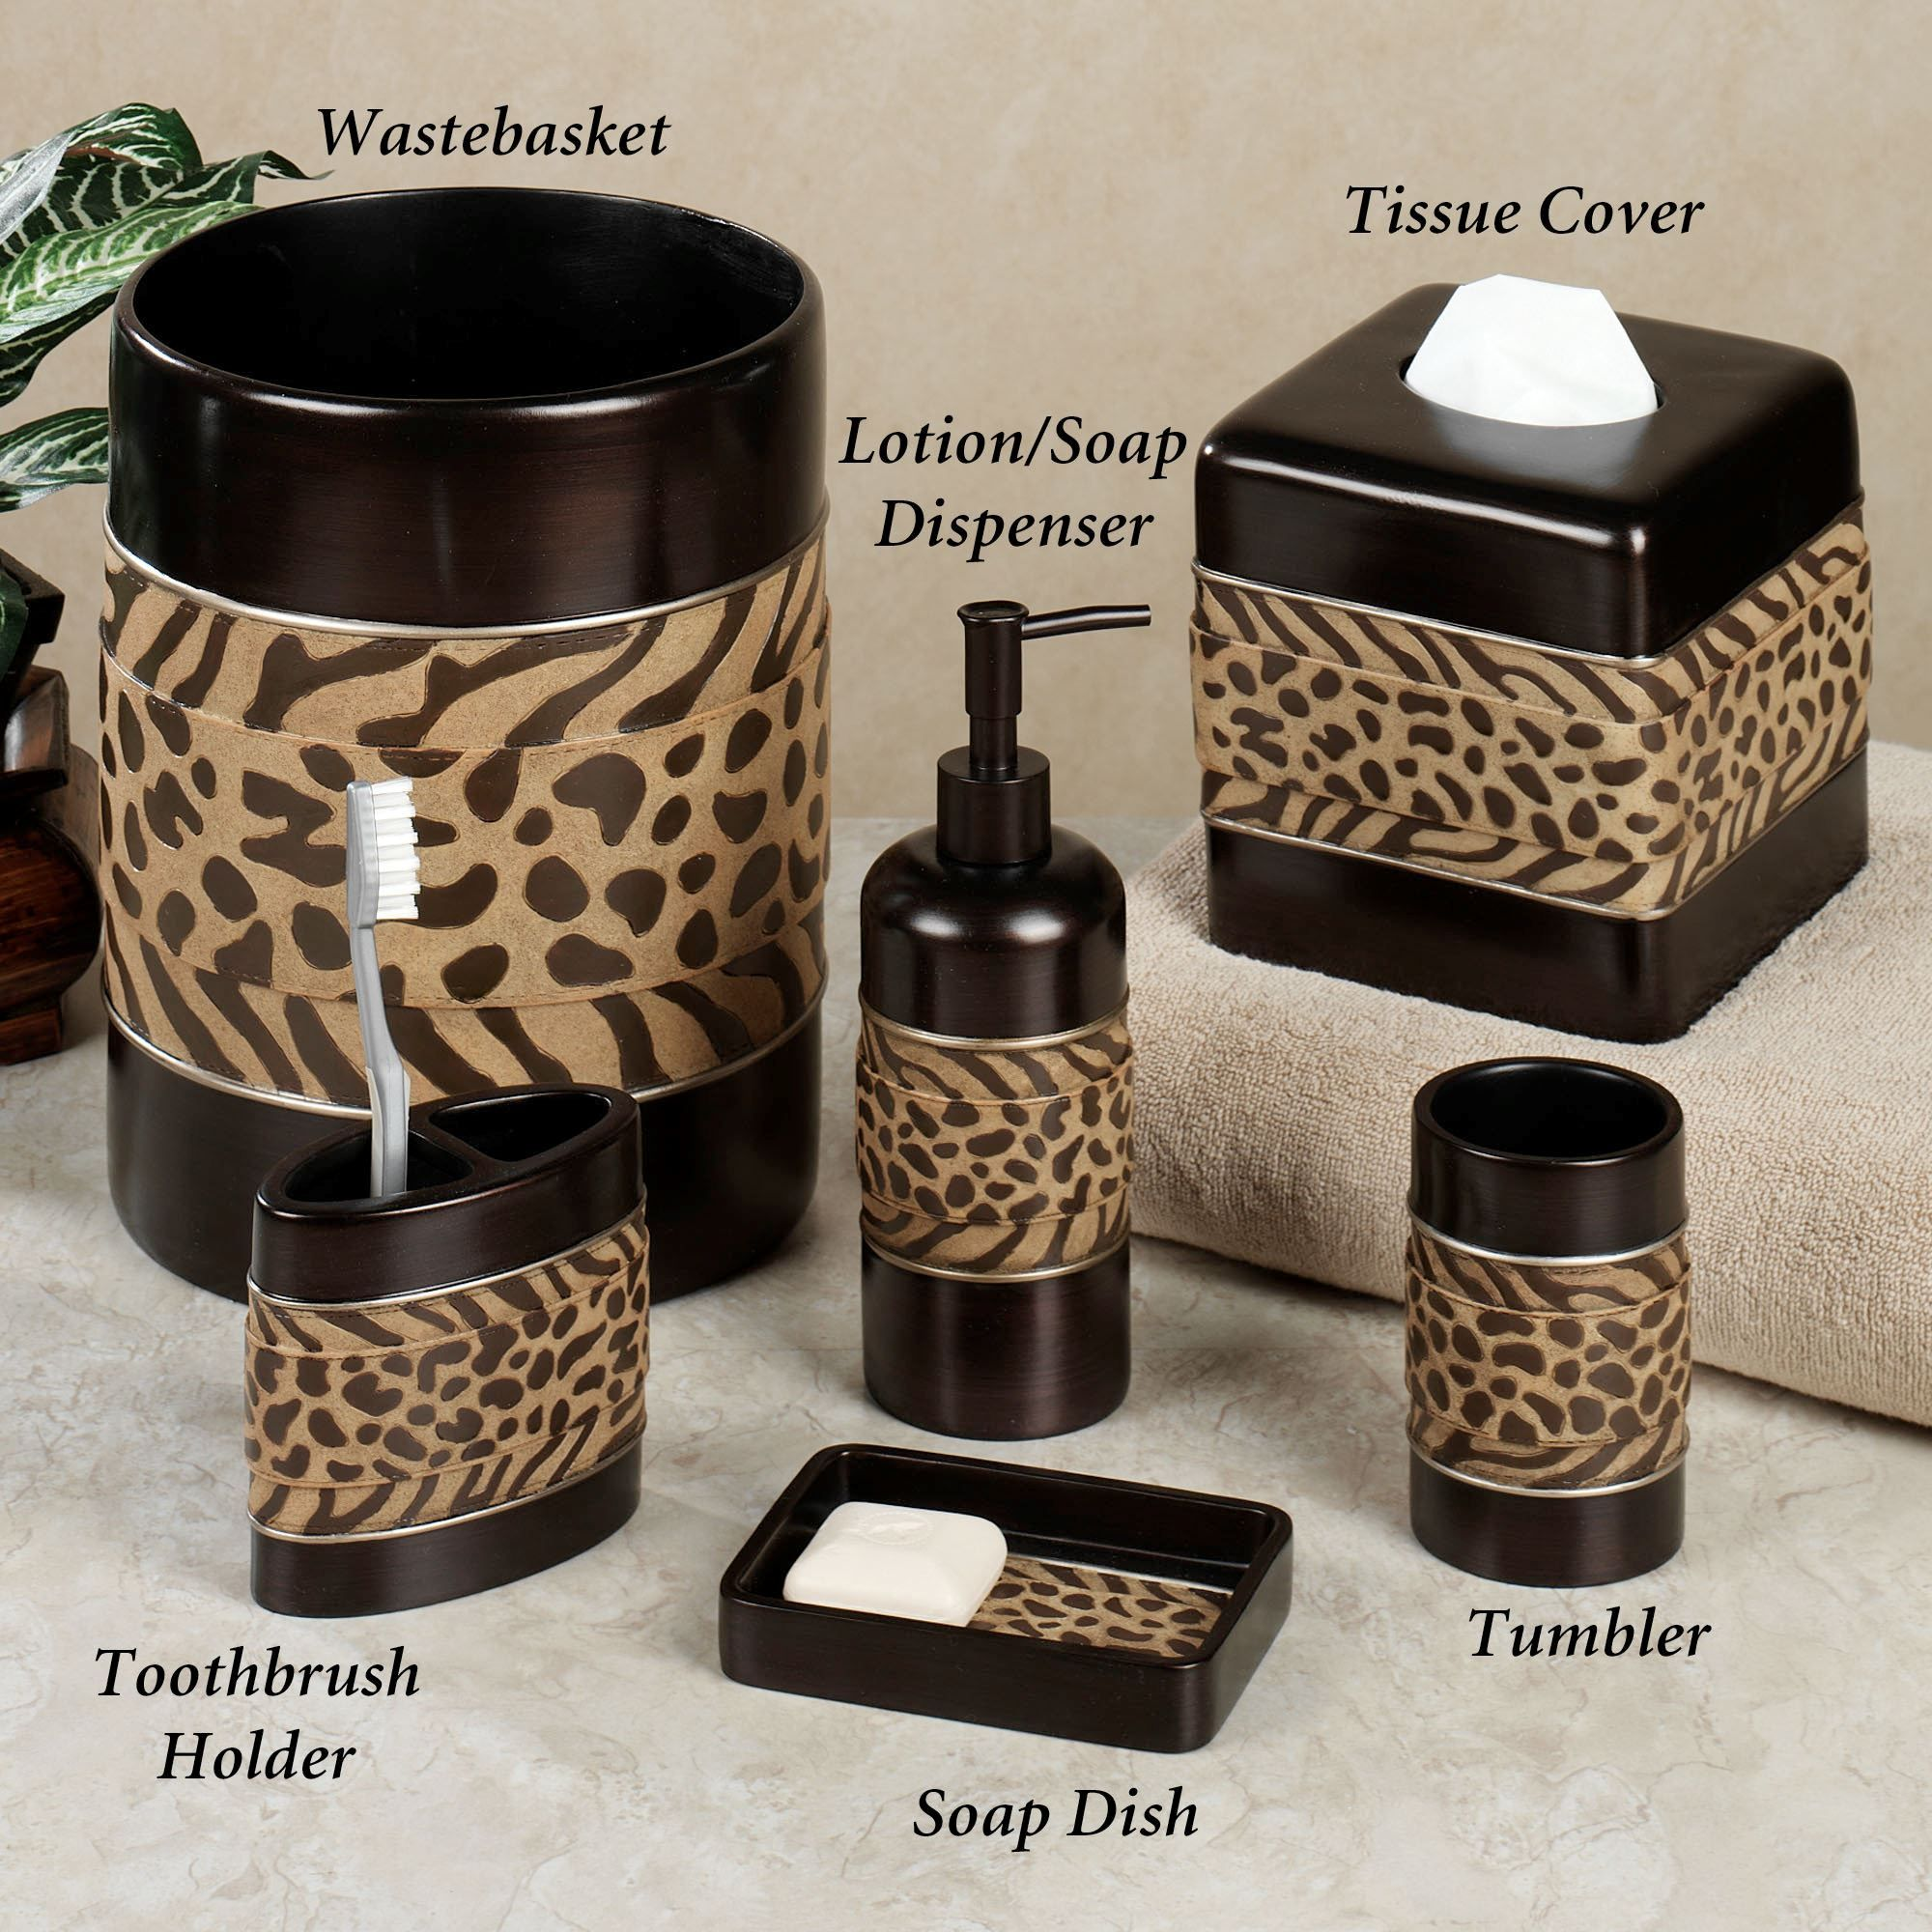 The Cheshire Animal Print Bath Accessories Feature Primal Beauty That These Natural Designs Have Always Evoked Cheetah And Zebra Pattern Bands Add A